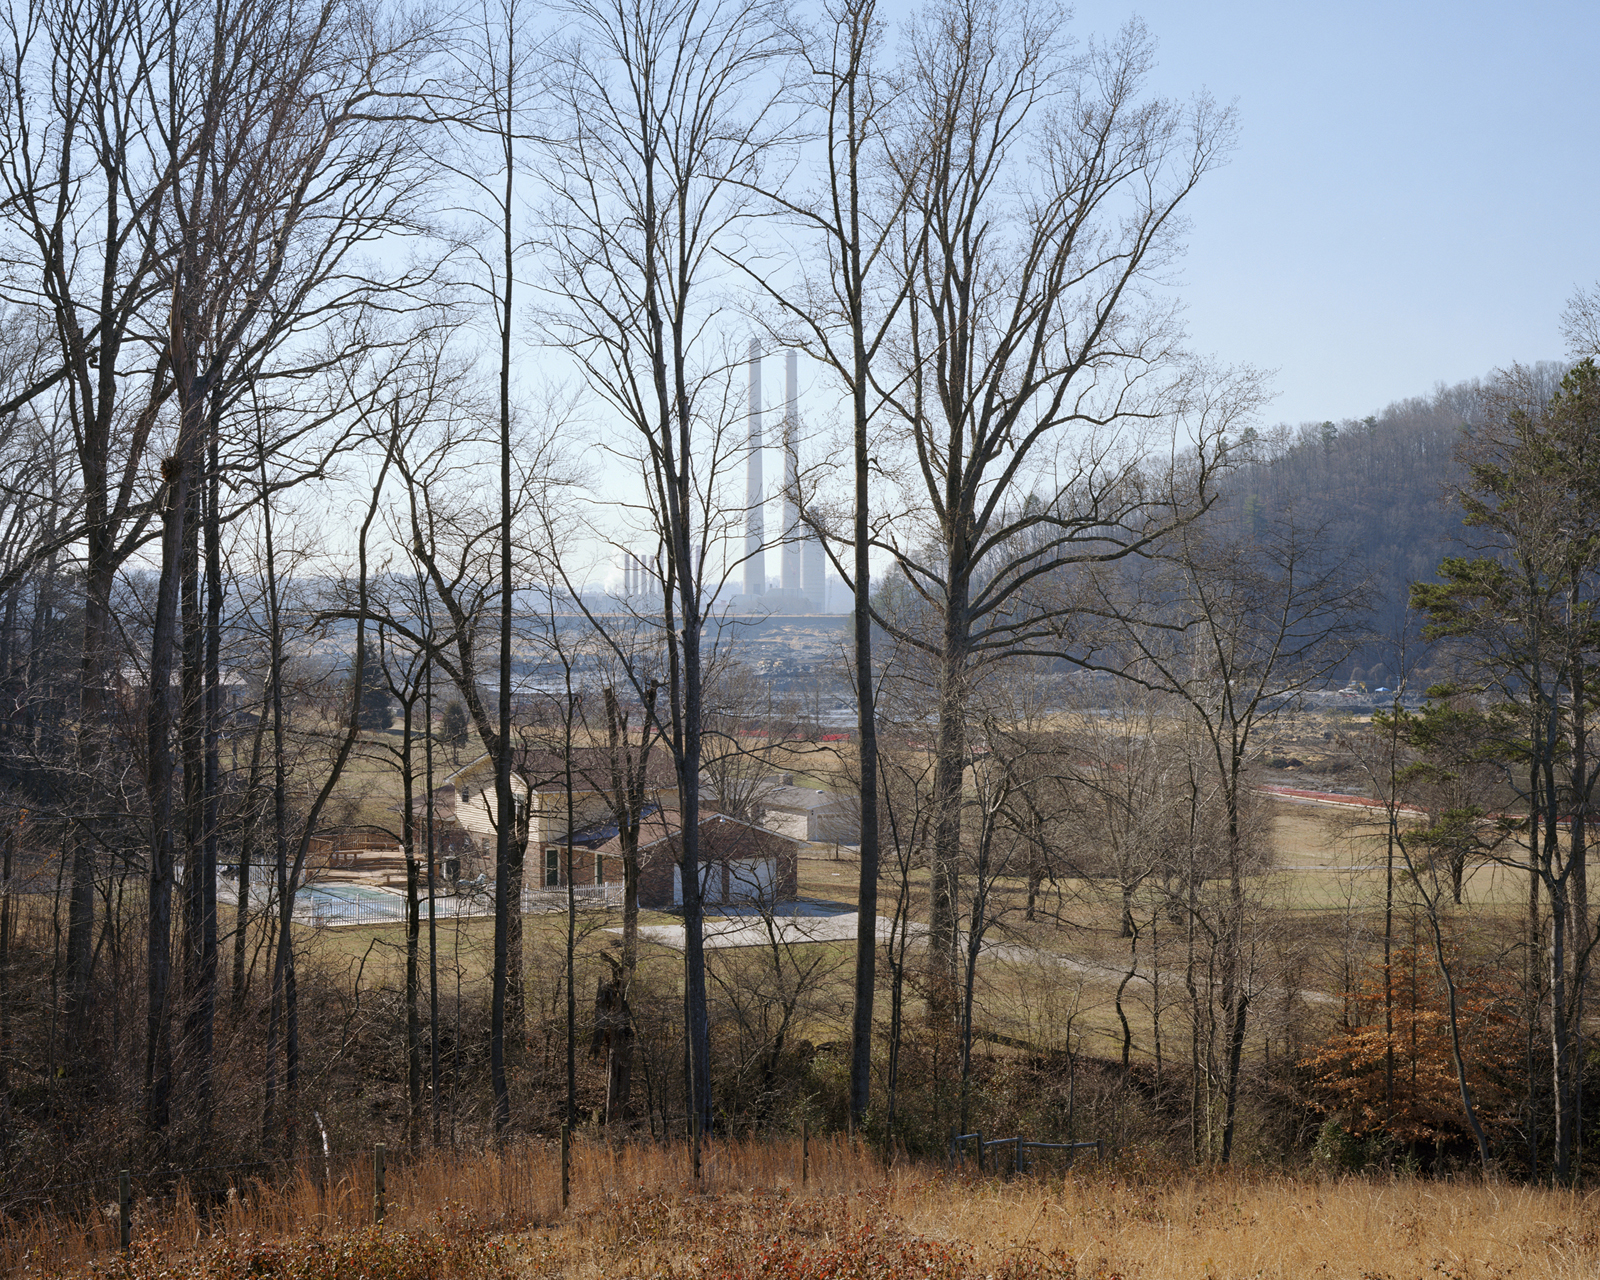 Coal Fly Ash Spill, Emory River, Tennessee, 2009